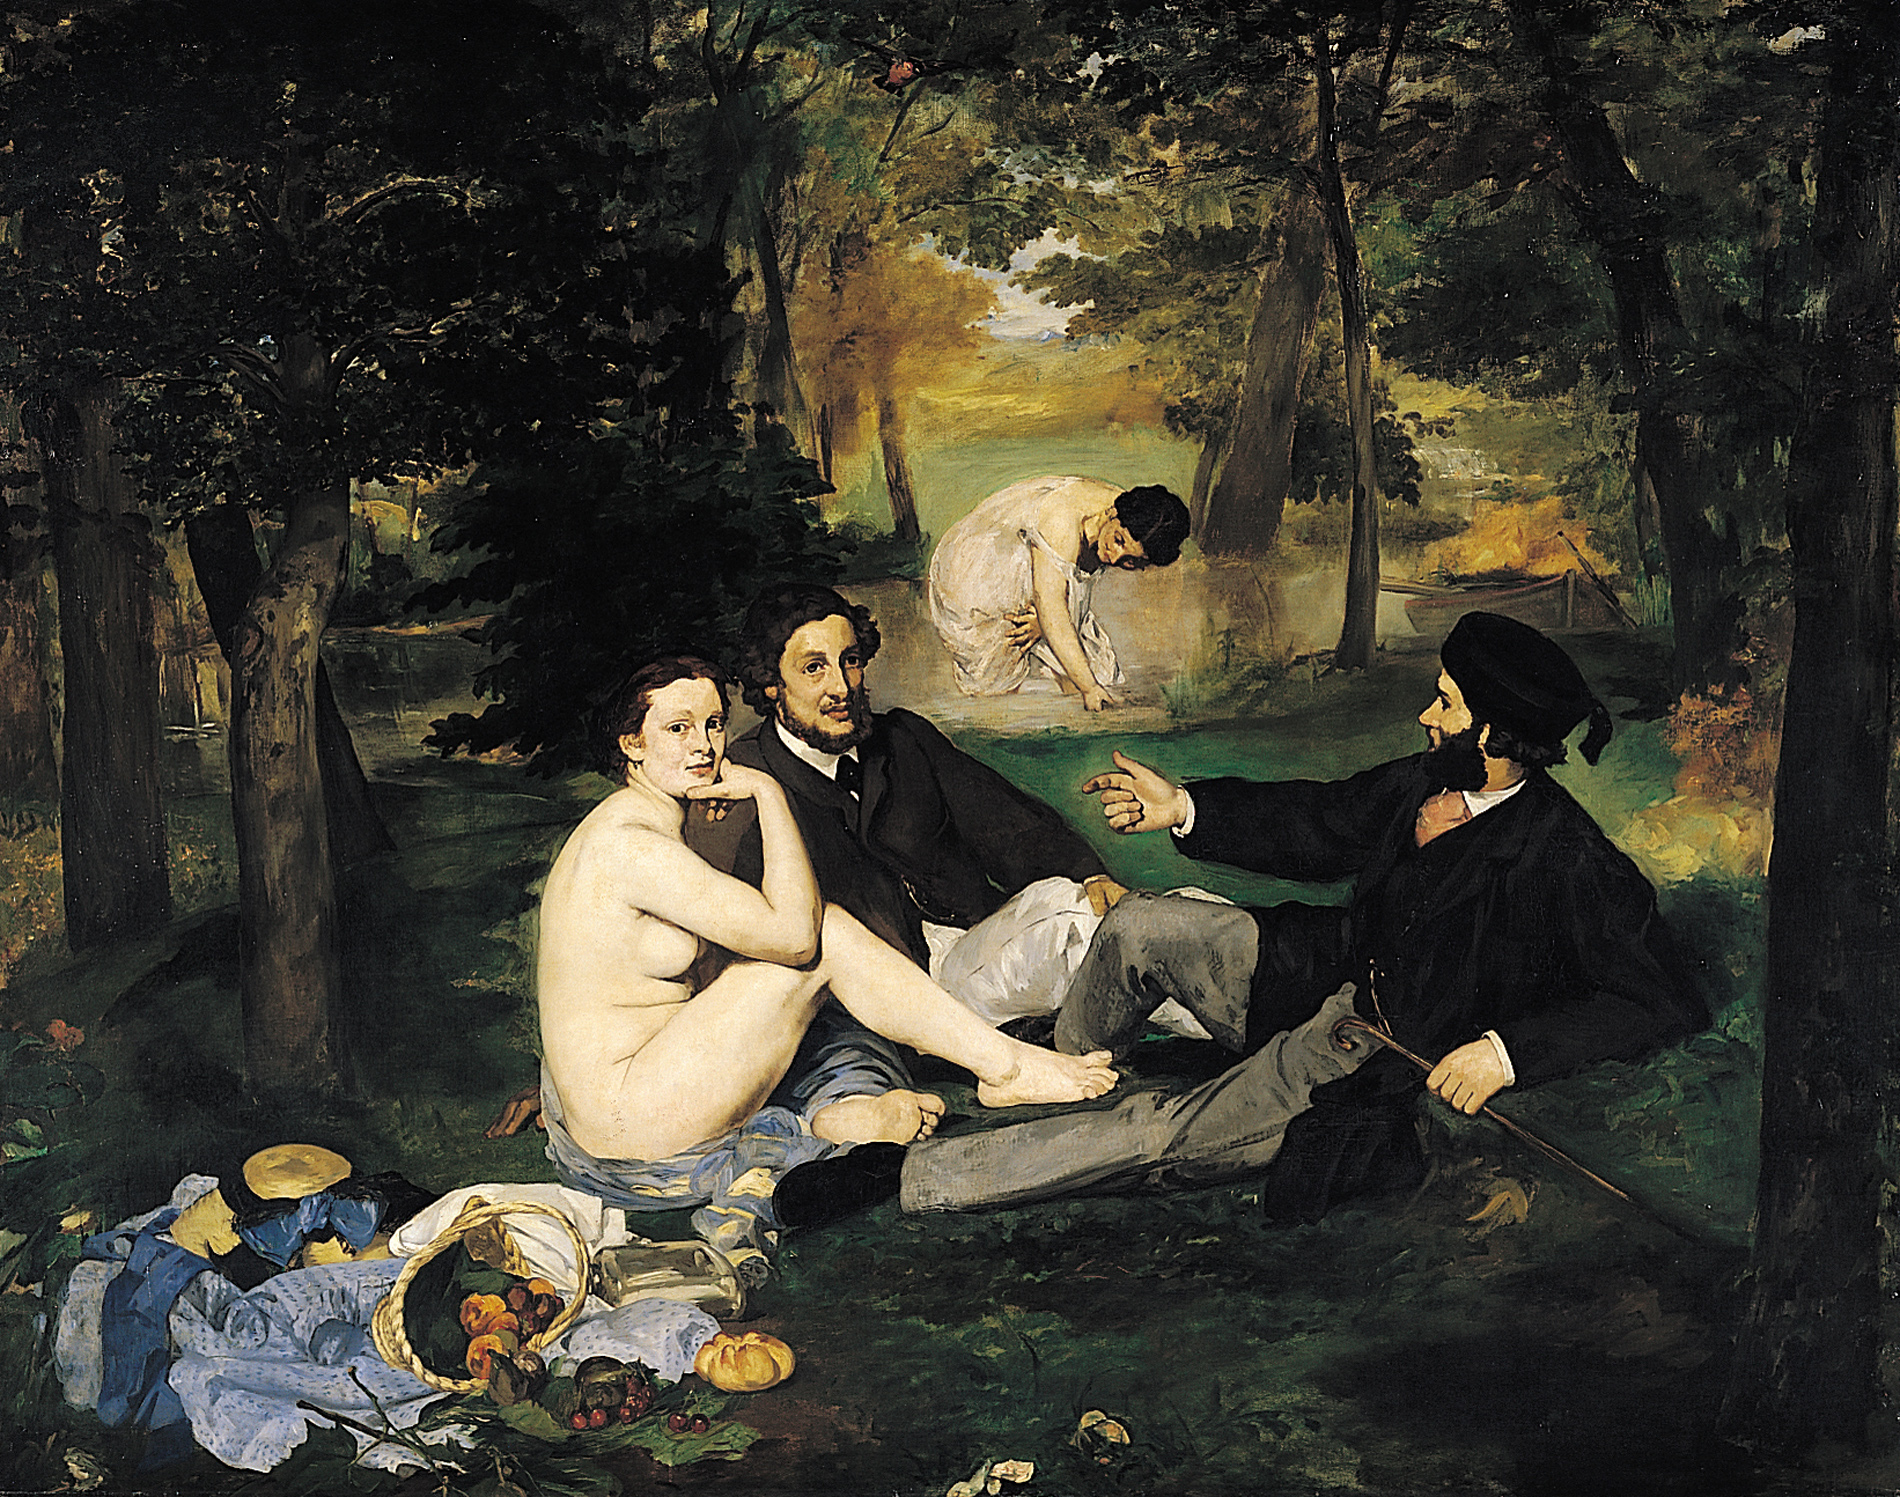 The Luncheon On The Grass, Edouard Manet, 1863